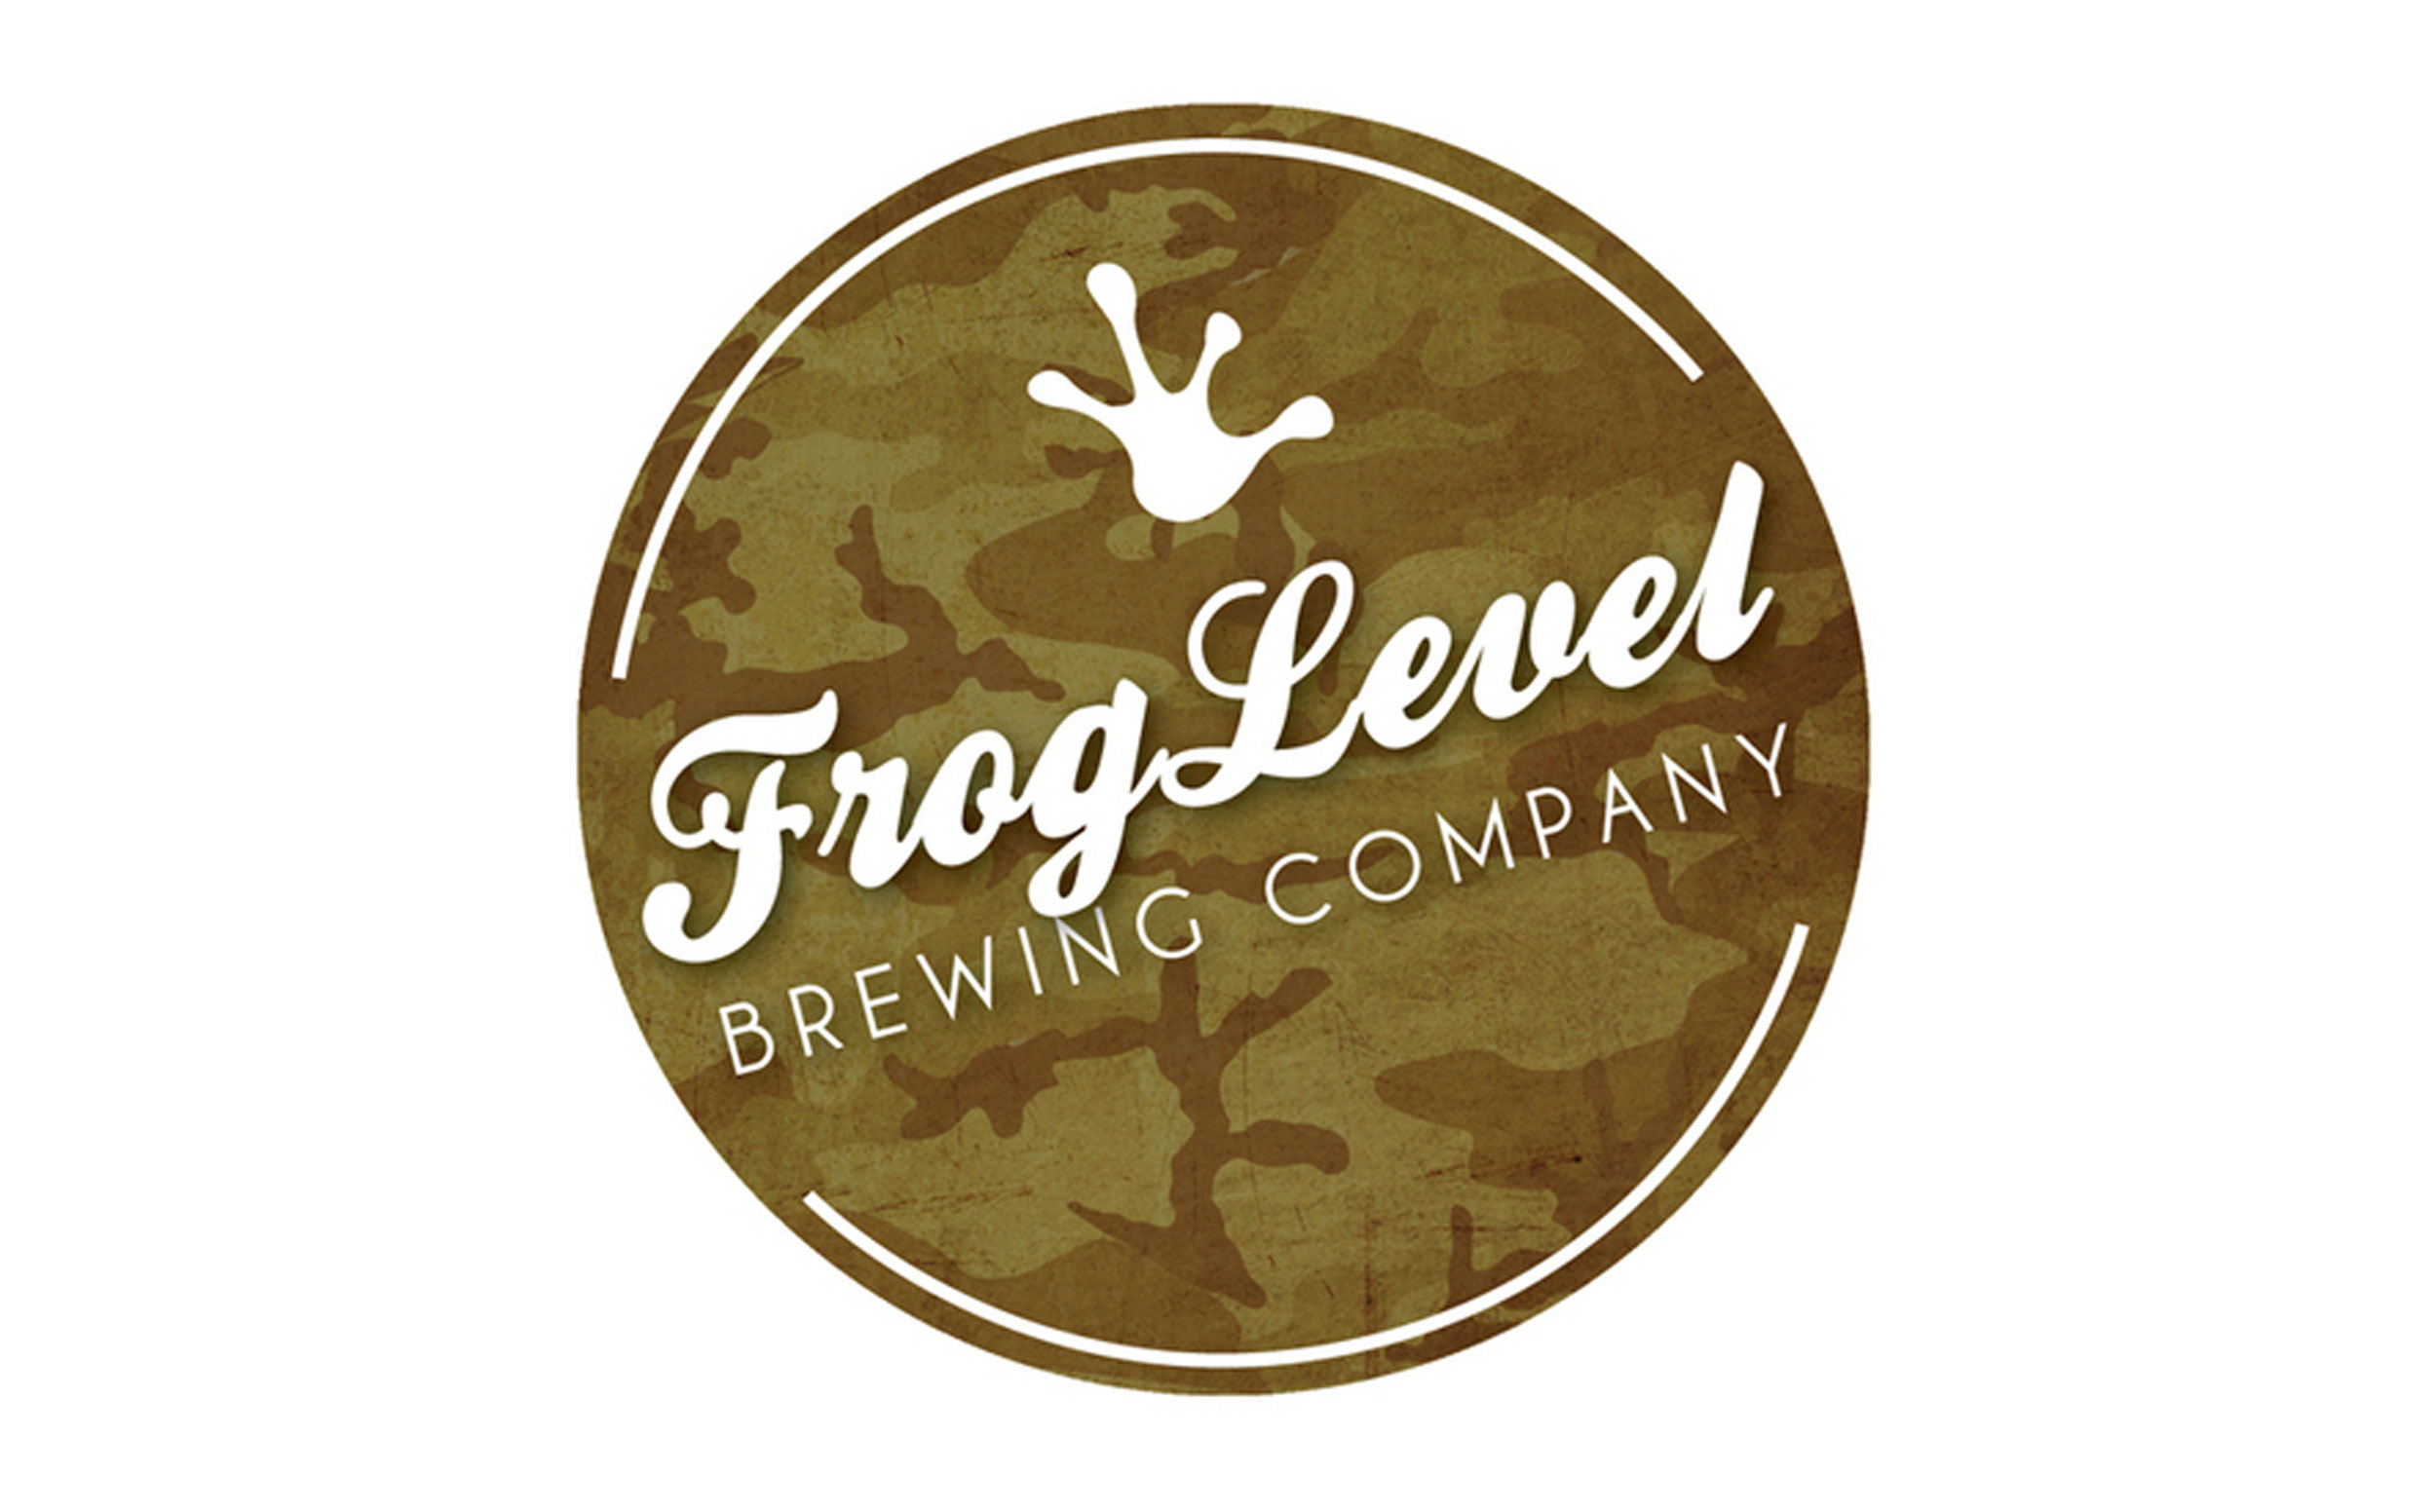 Frog Level Brewery